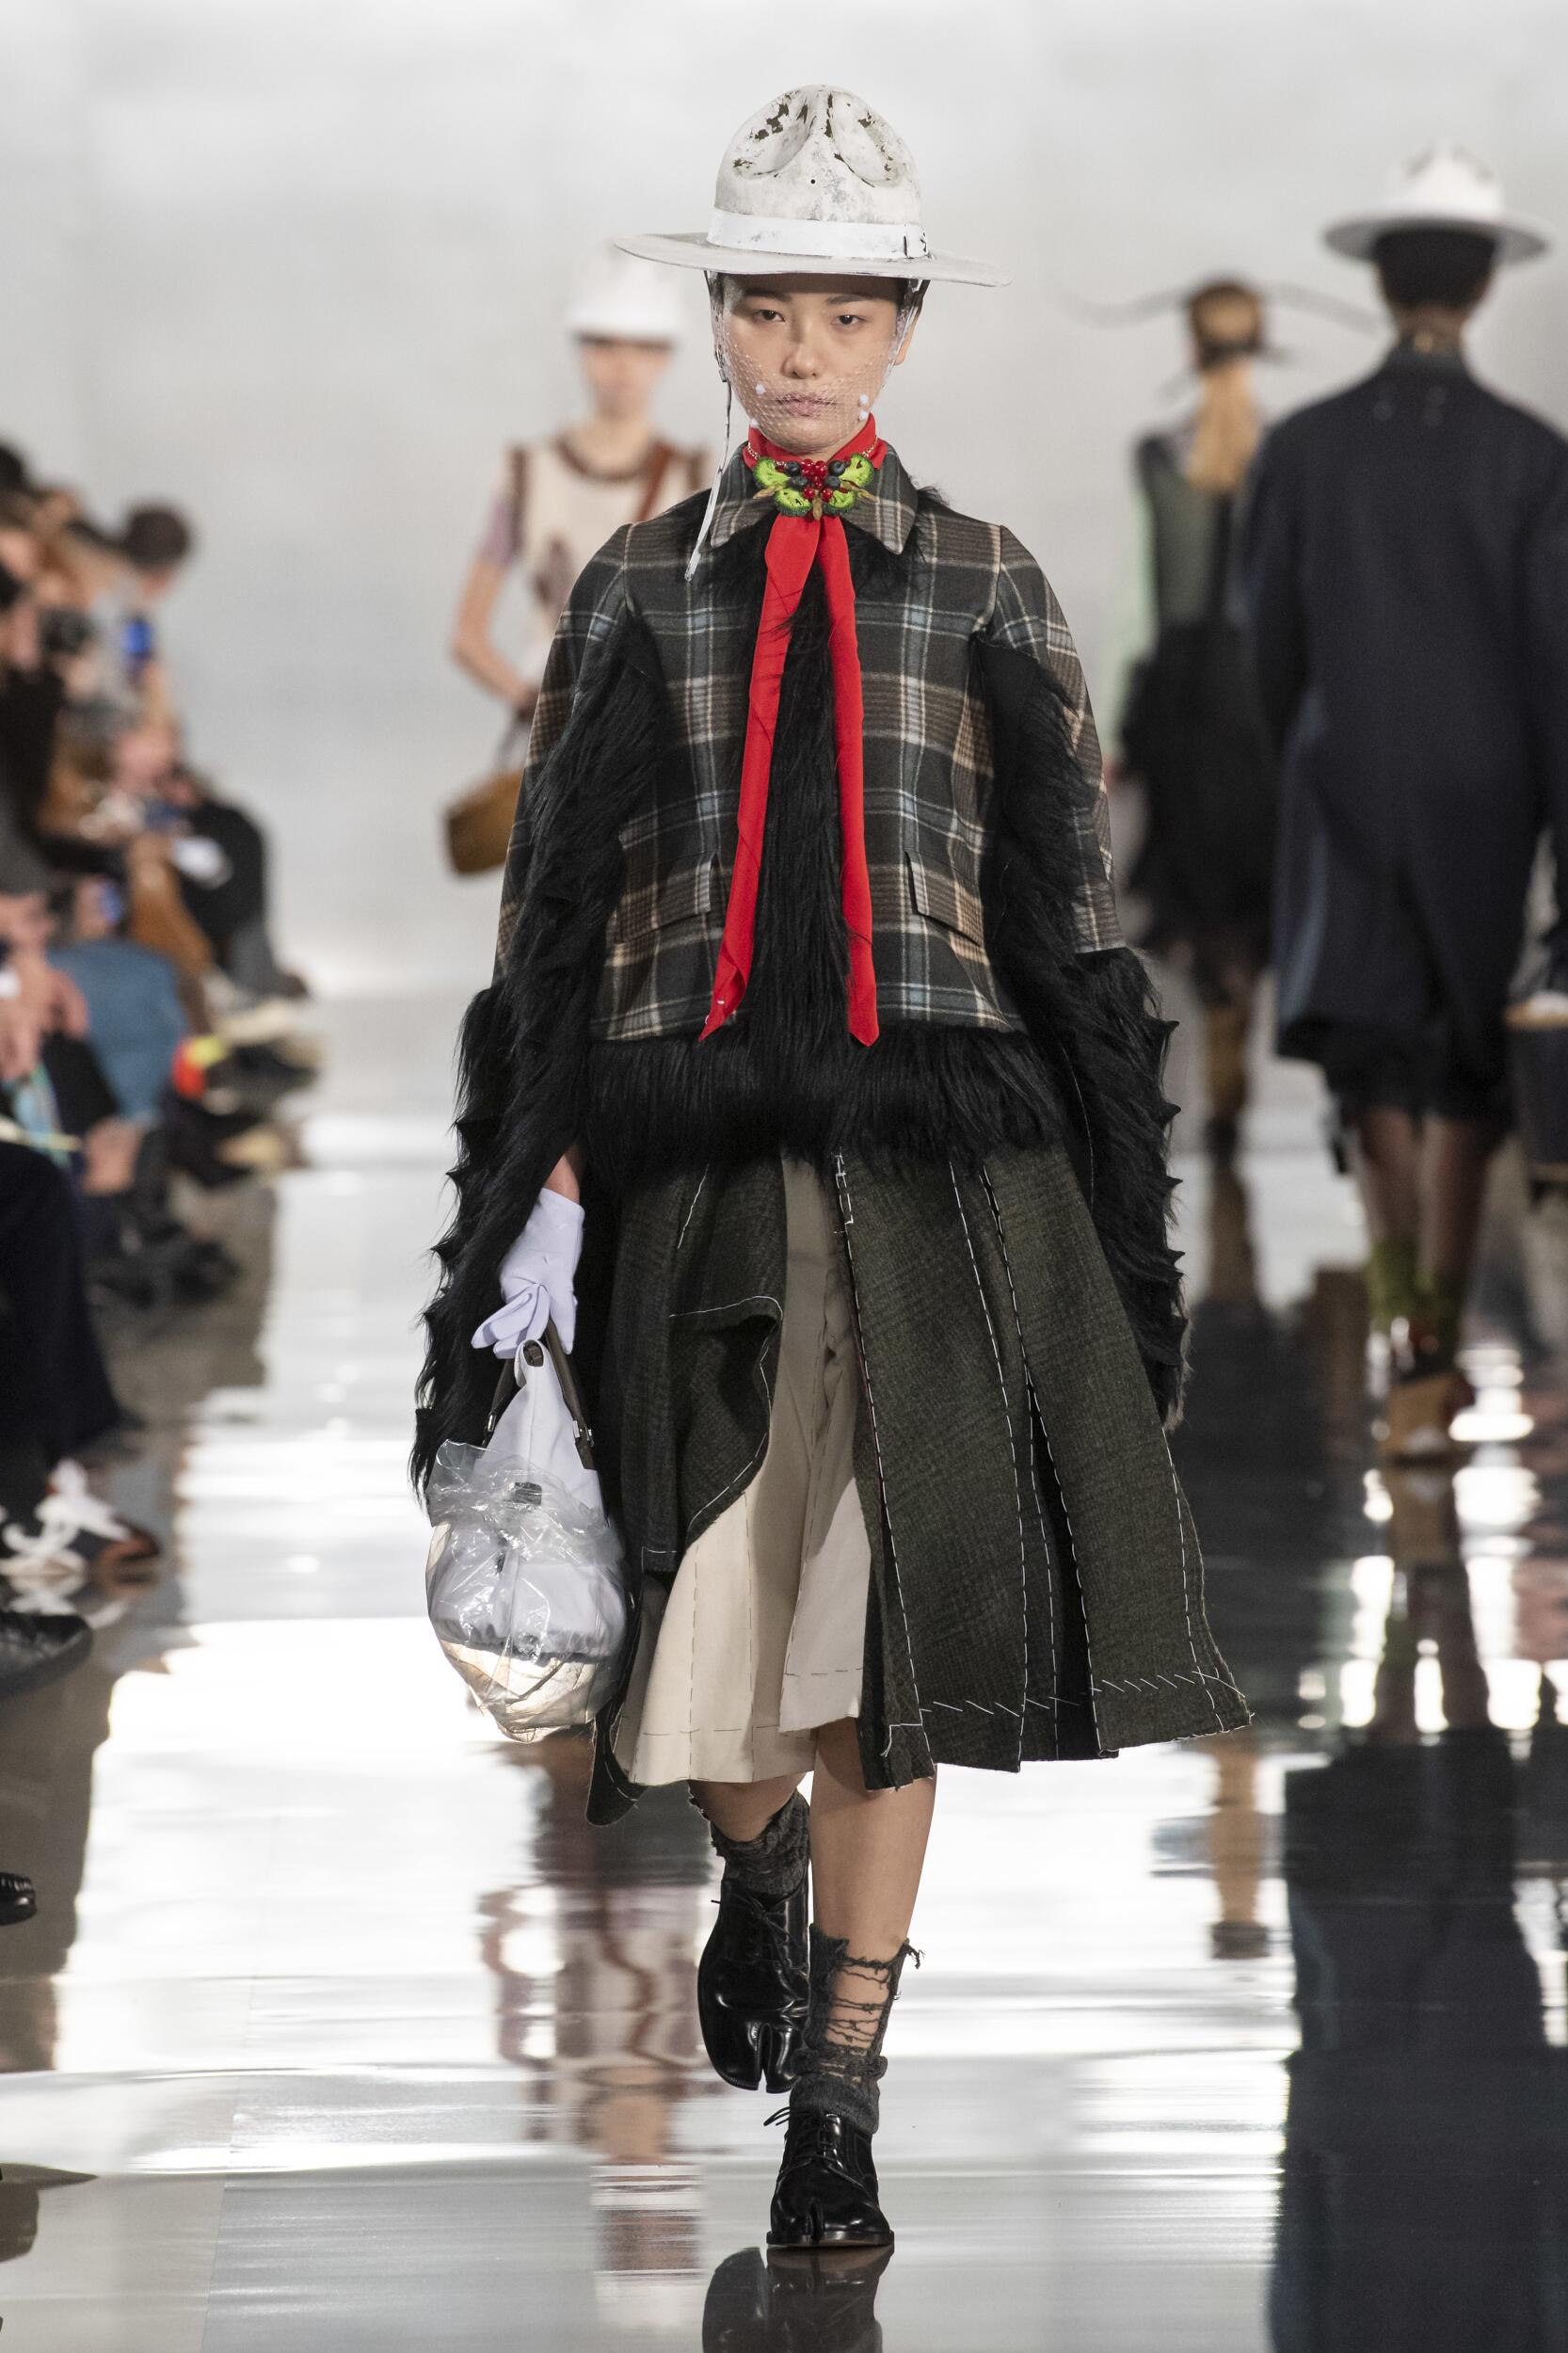 Runway Maison Margiela Fall Winter 2020 Women's Collection Paris Fashion Week